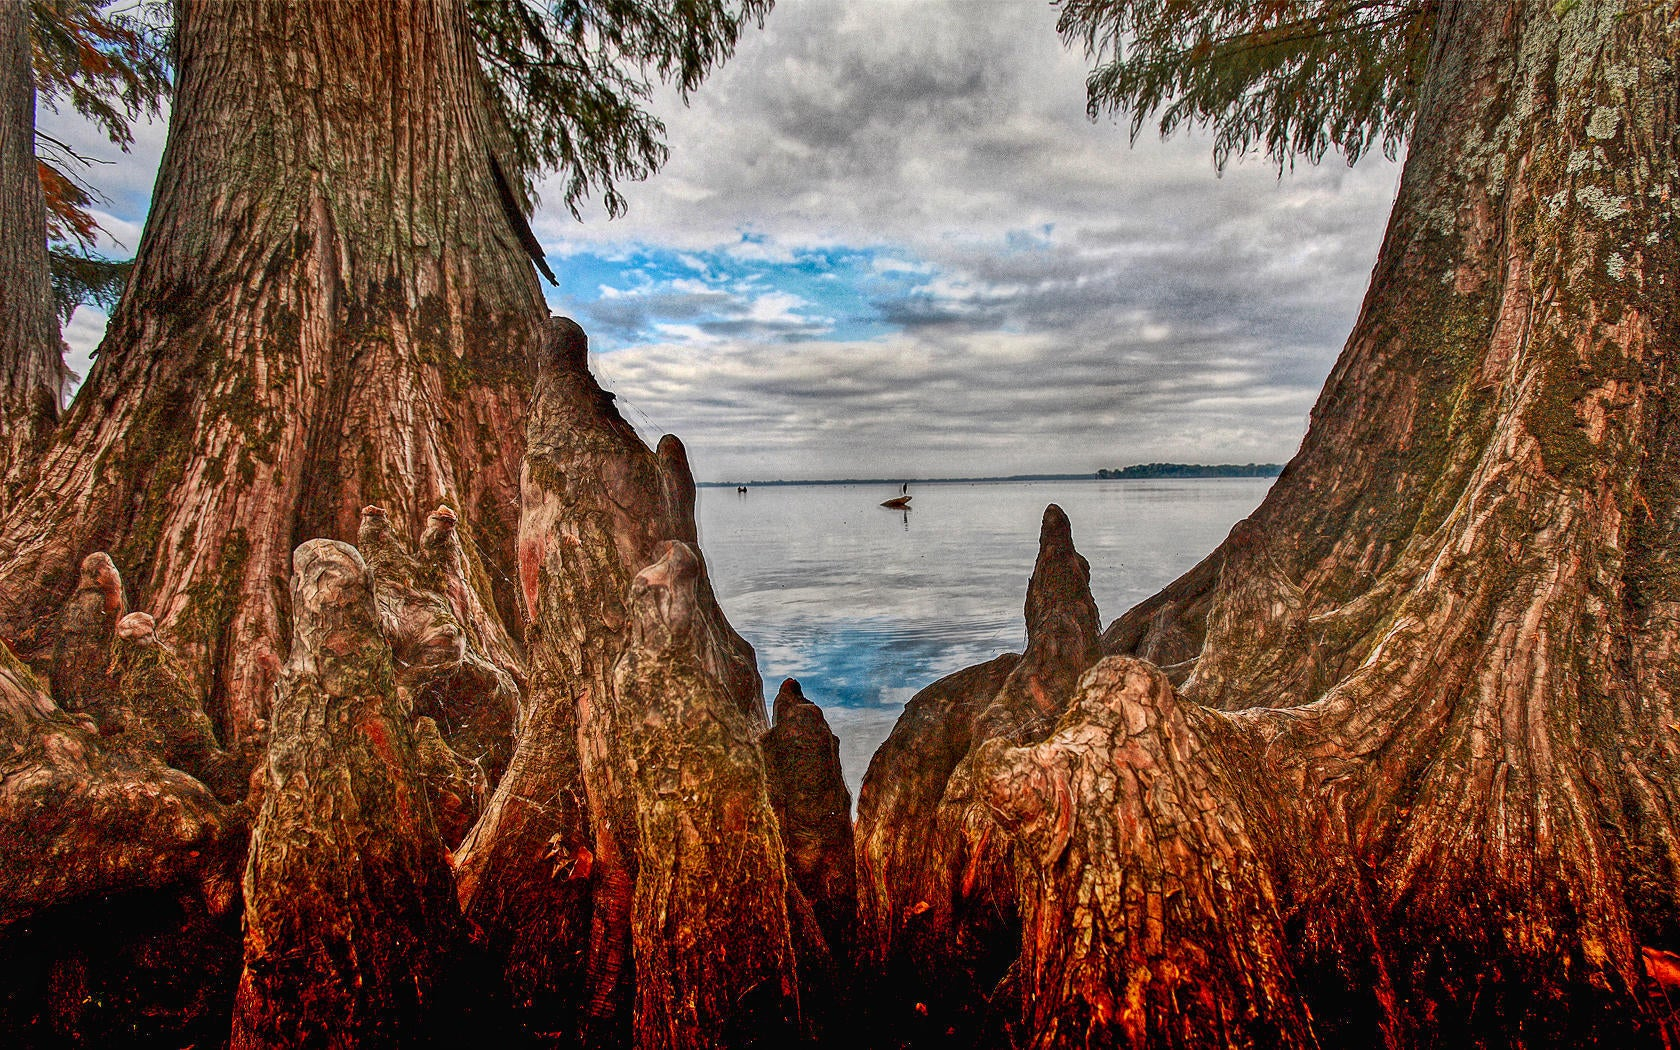 cypress-knees-stumps.jpg